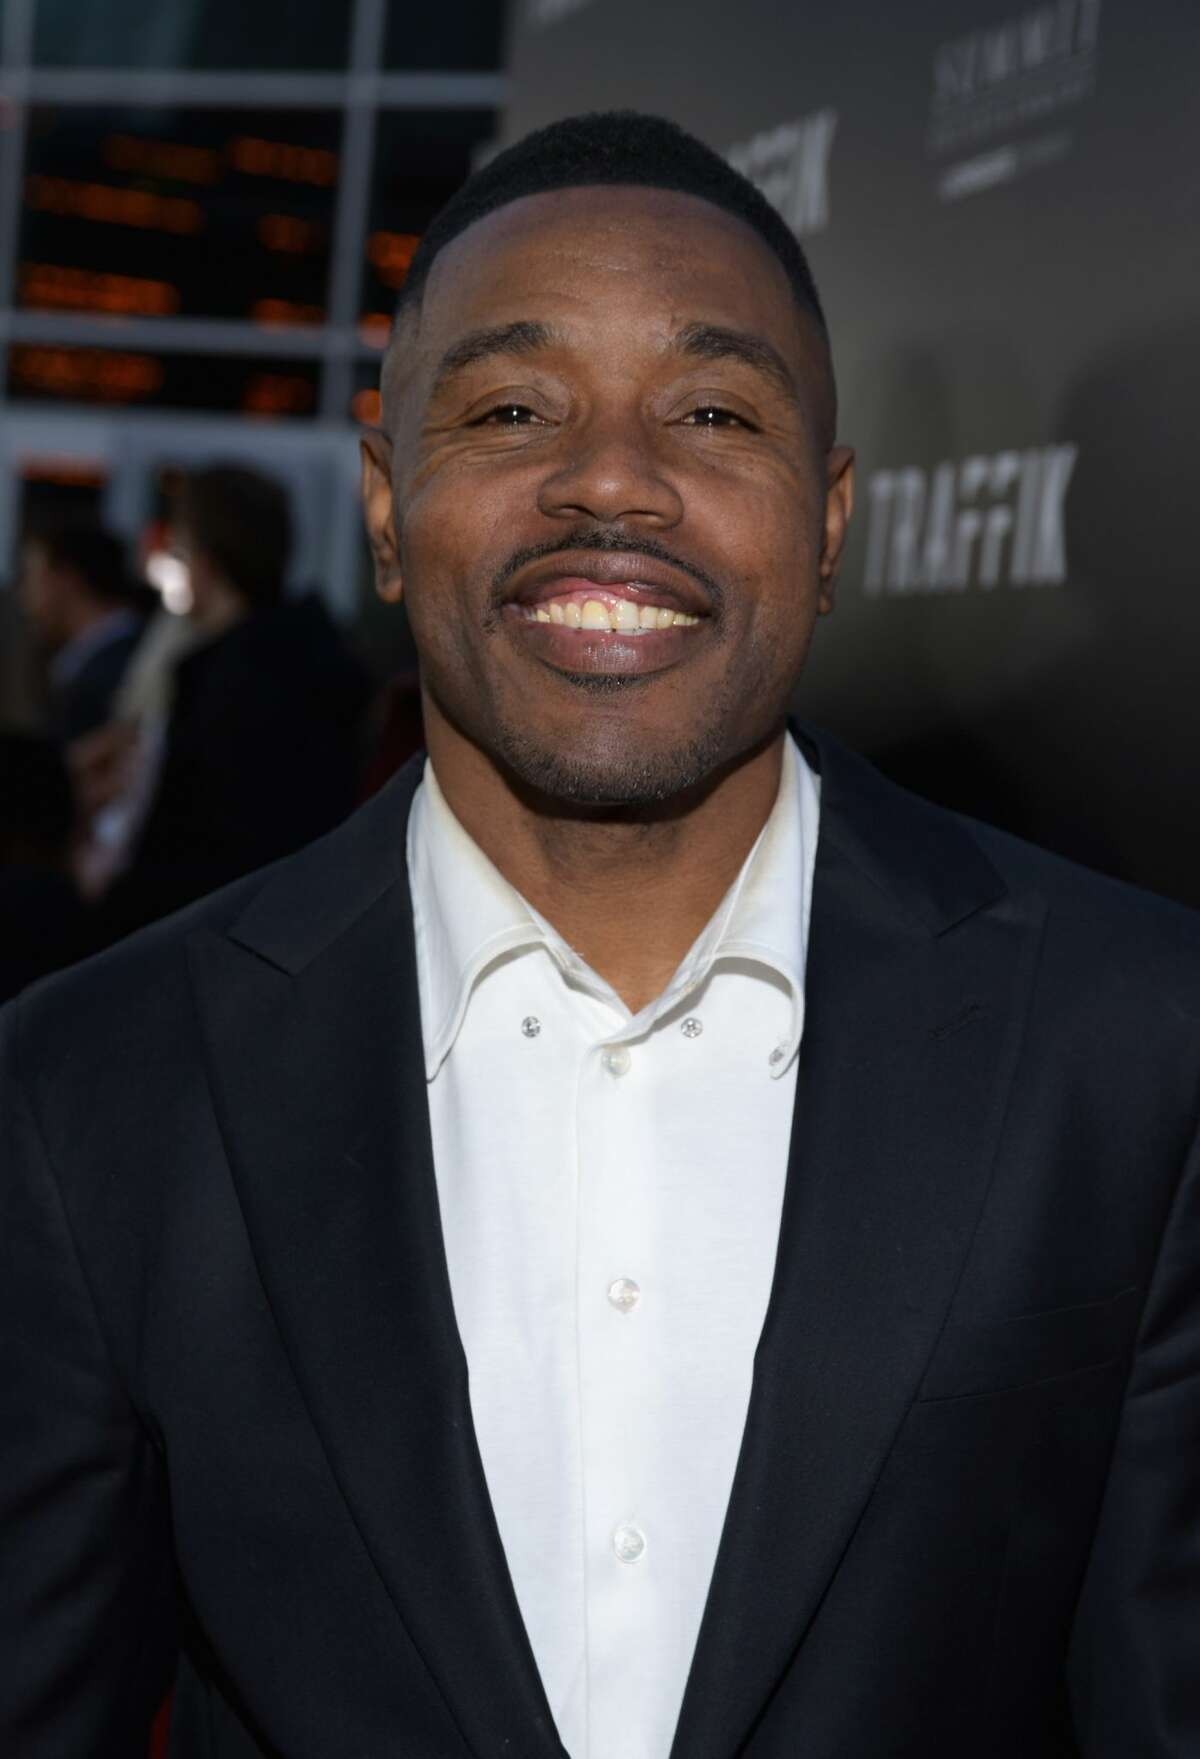 Now Tyrin Turner Trying to capitalize off his starring role in Menace, Turner signed with Houston's Rap-A-Lot Records and made an appearance on a Geto Boys album, but his own album was never released. These days, the 45-year-old still gets work as an actor, but primarily for one-time appearances on TV series. He appeared in an episode of ABC's Black-ish last season. He's also listed as an associate producer on an upcoming horror movie called The House Next Door. His son also is trying to start his rap career and he goes by the moniker - no surprise -